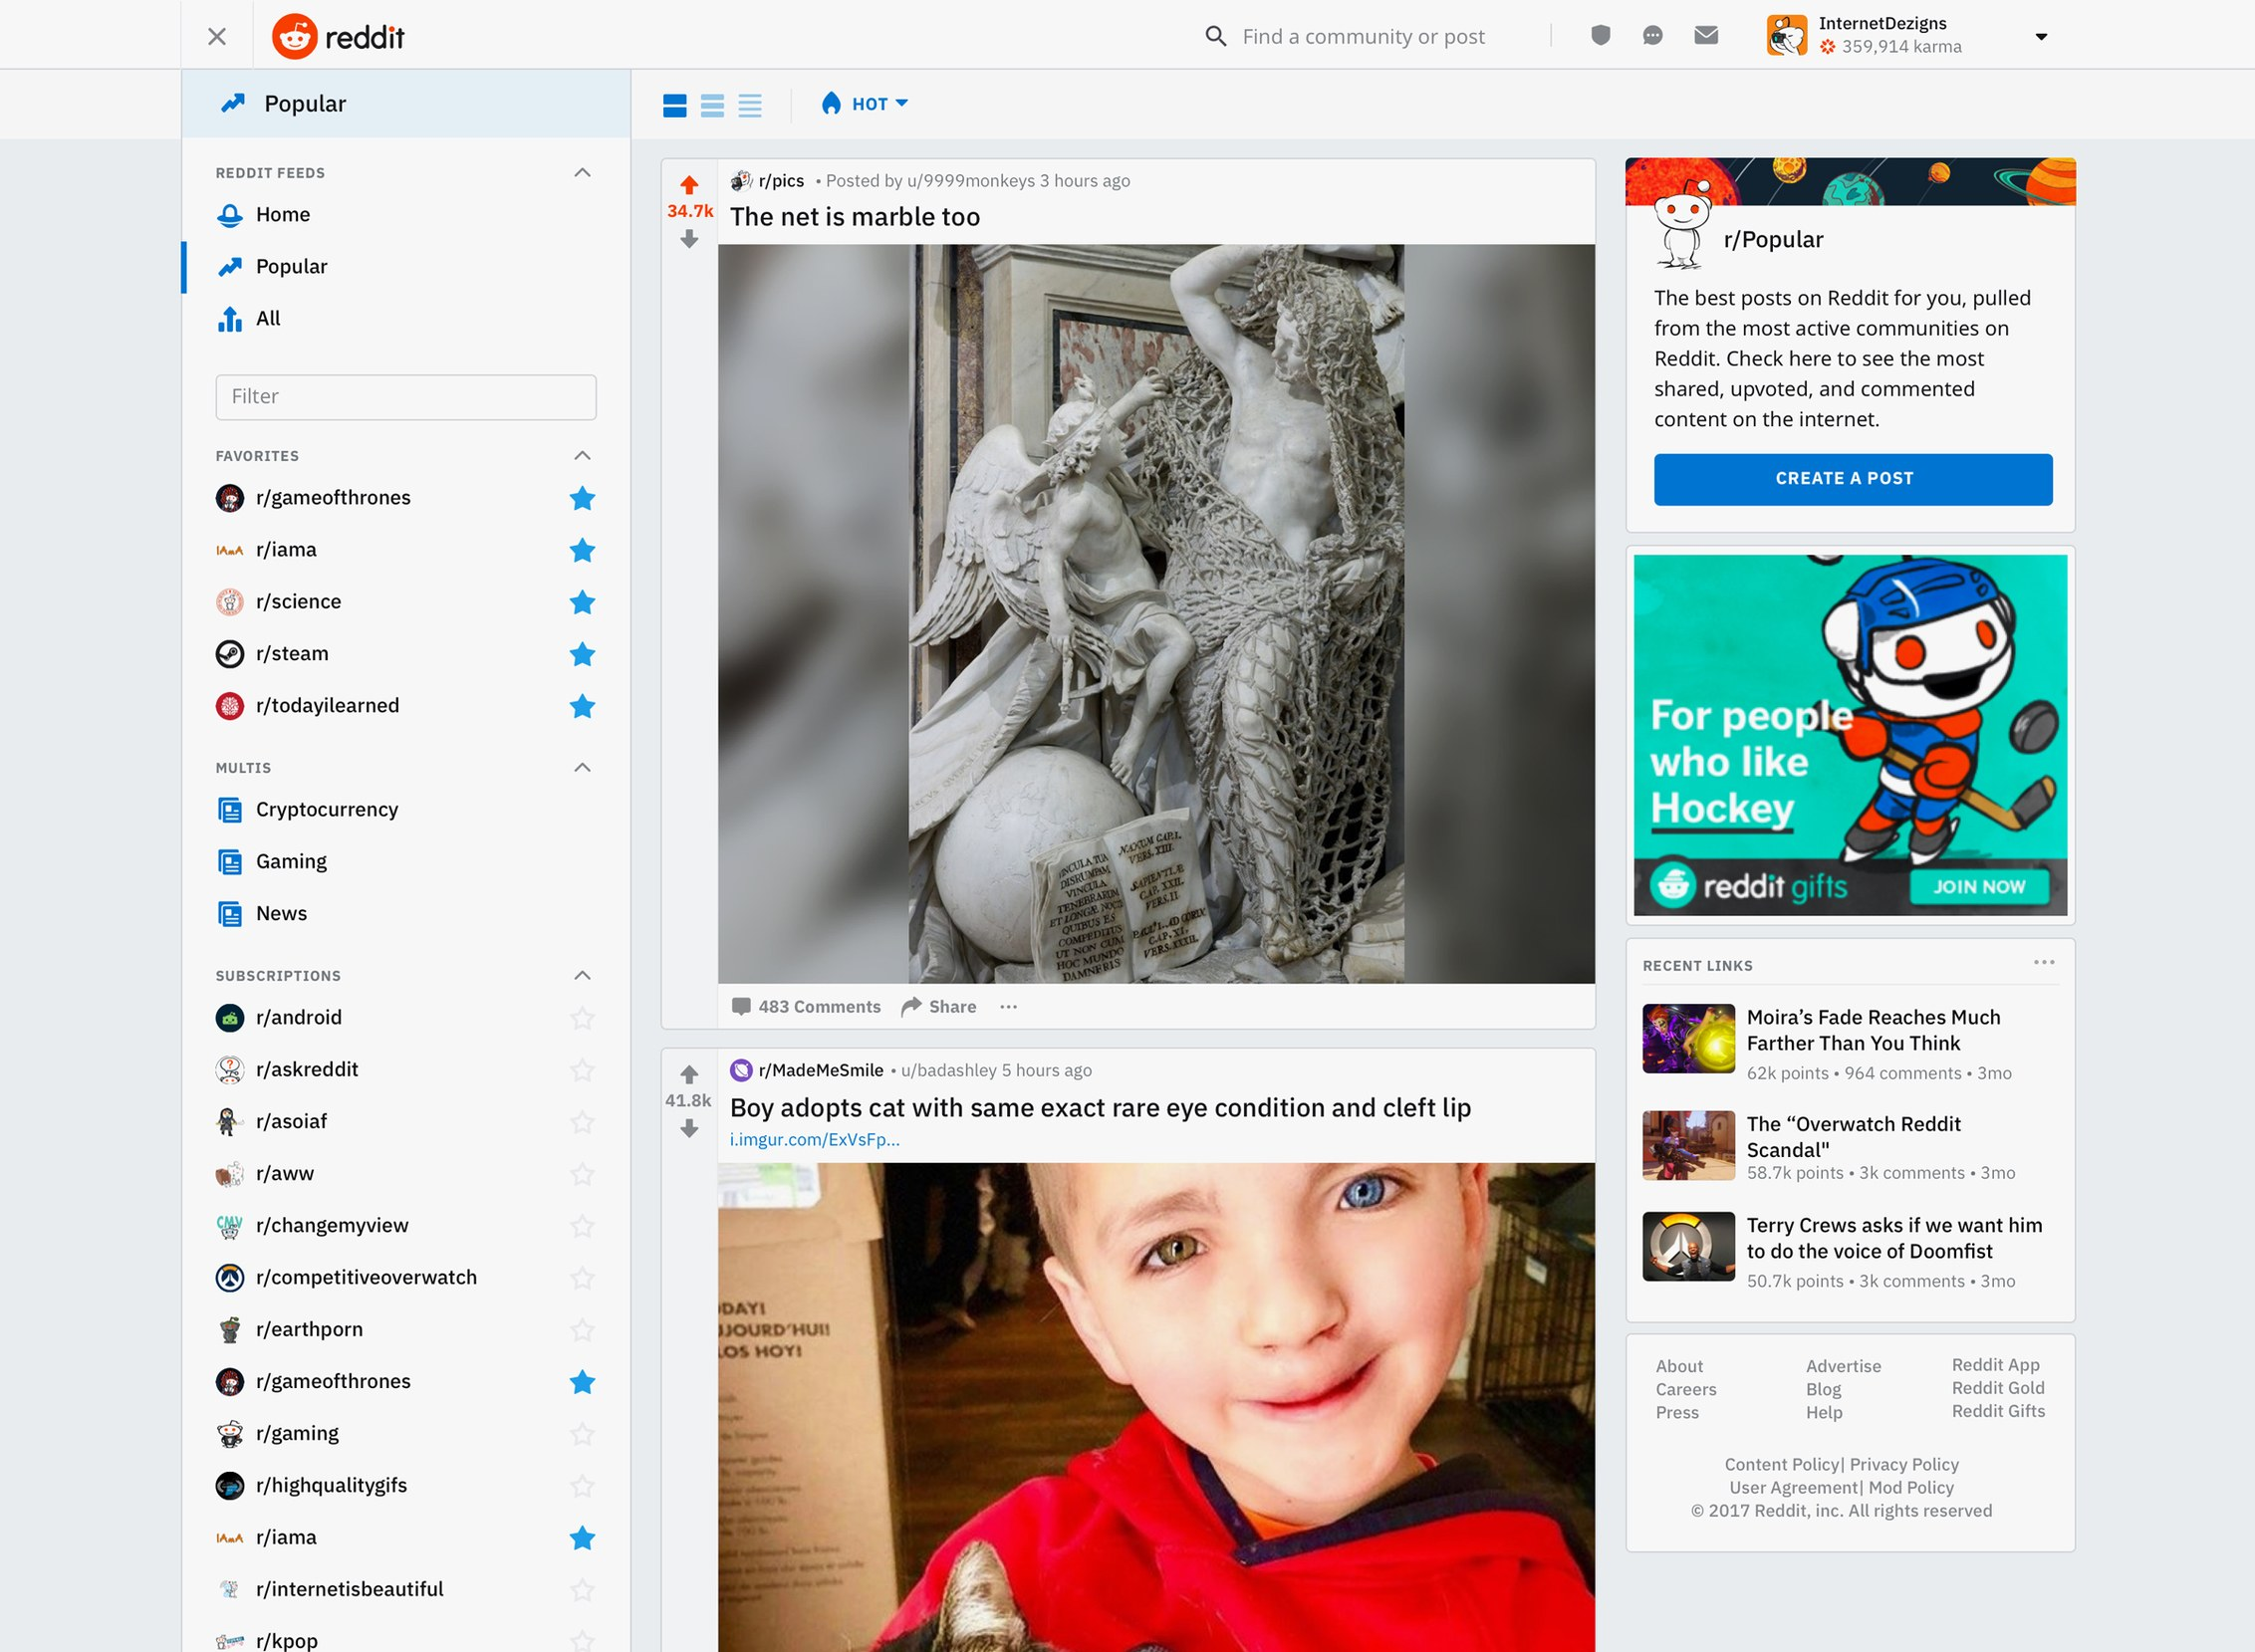 Here's what's changing in Reddit's major redesign